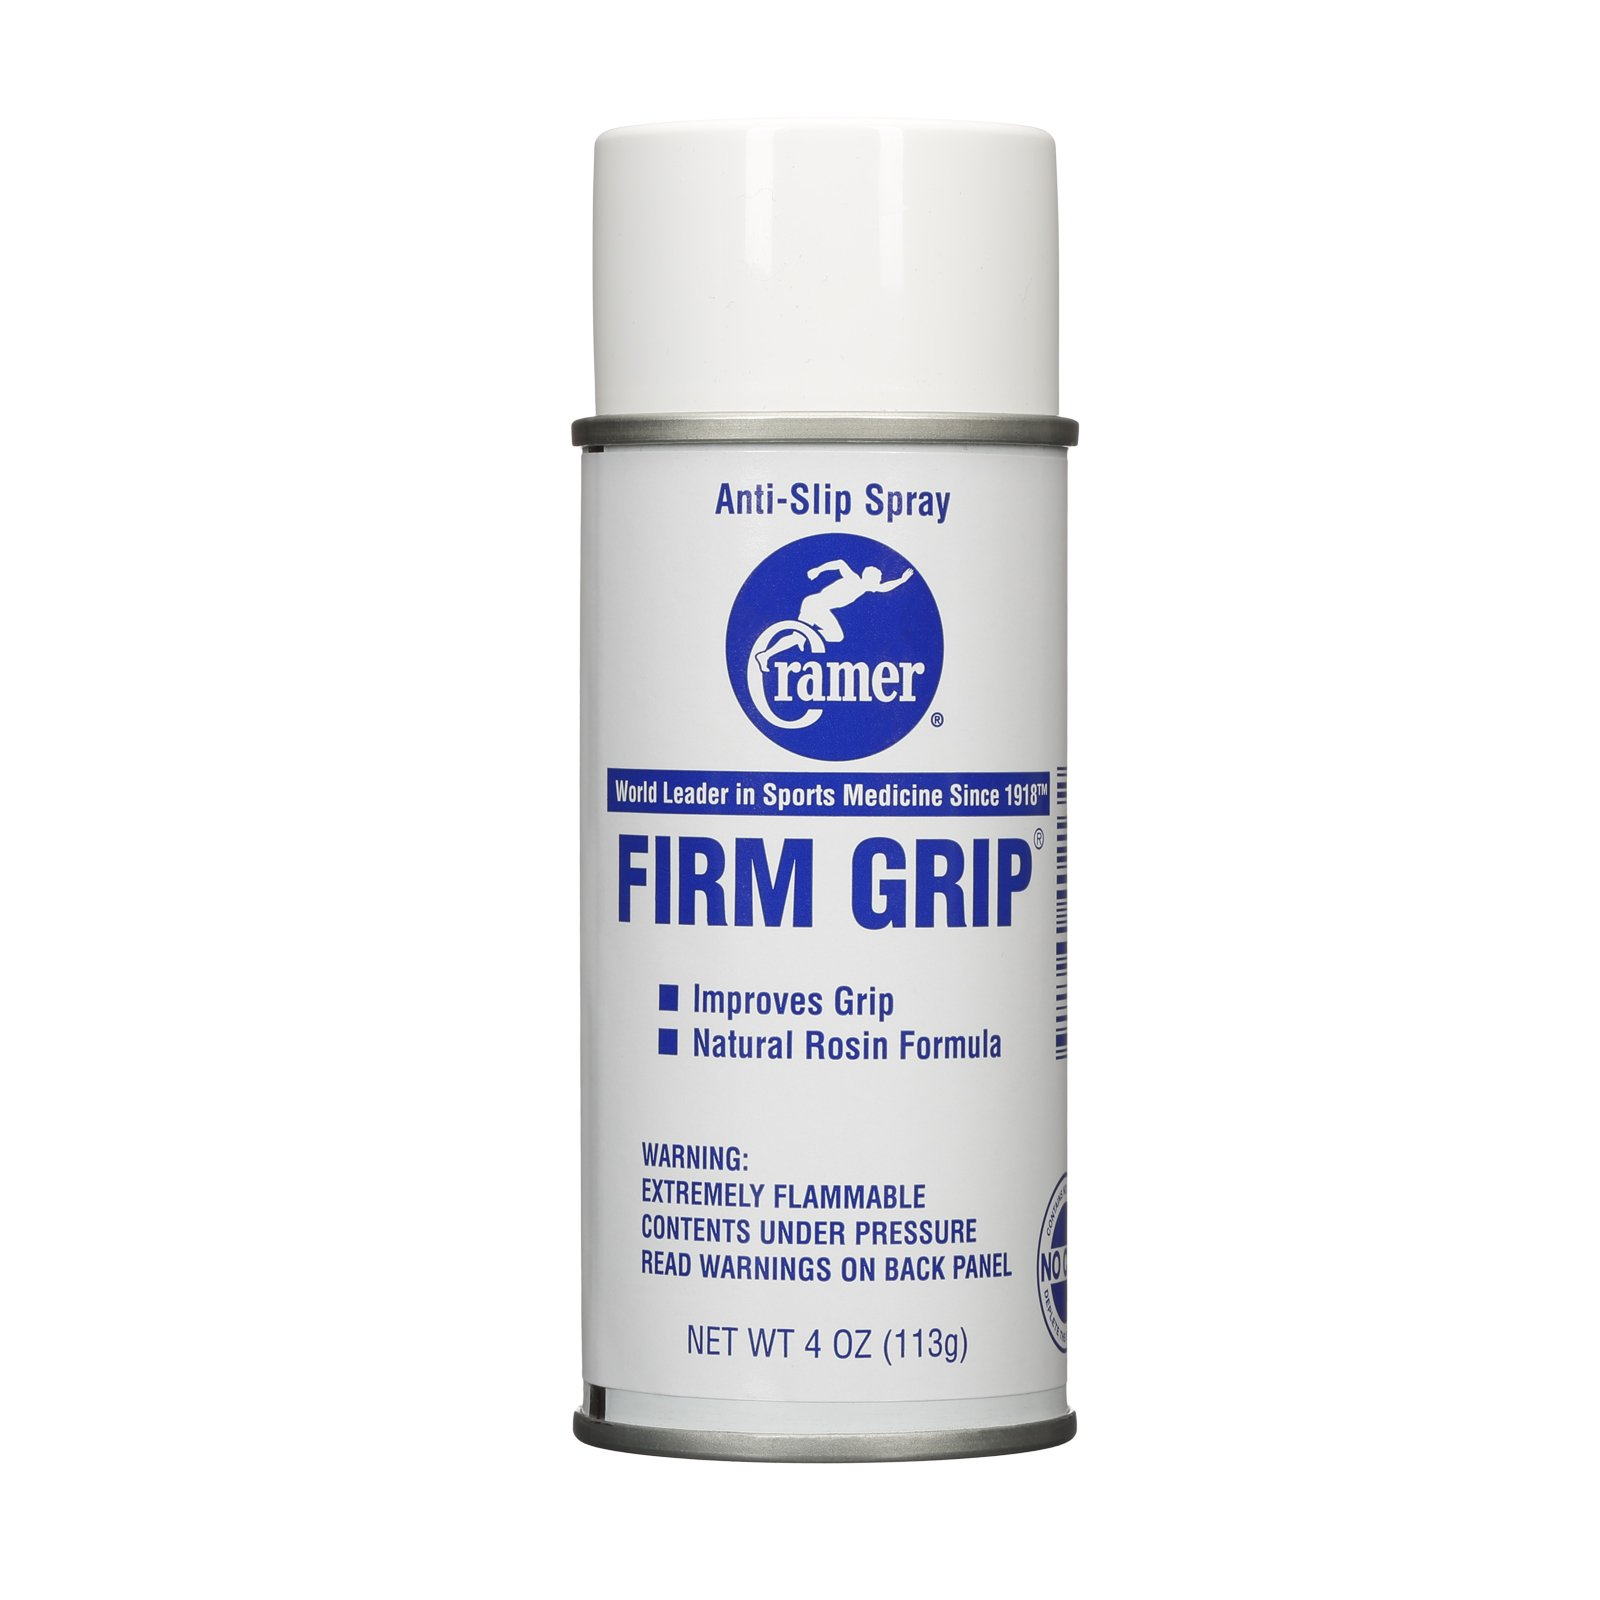 Cramer Firm Grip, Anti-Slip Grip Enhancer for Sweaty Hands & Activities Like Football, Tennis, Golf, Weightlifting, Pole Fitness & Gymnastics, Spray or Powder, 4 Ounce